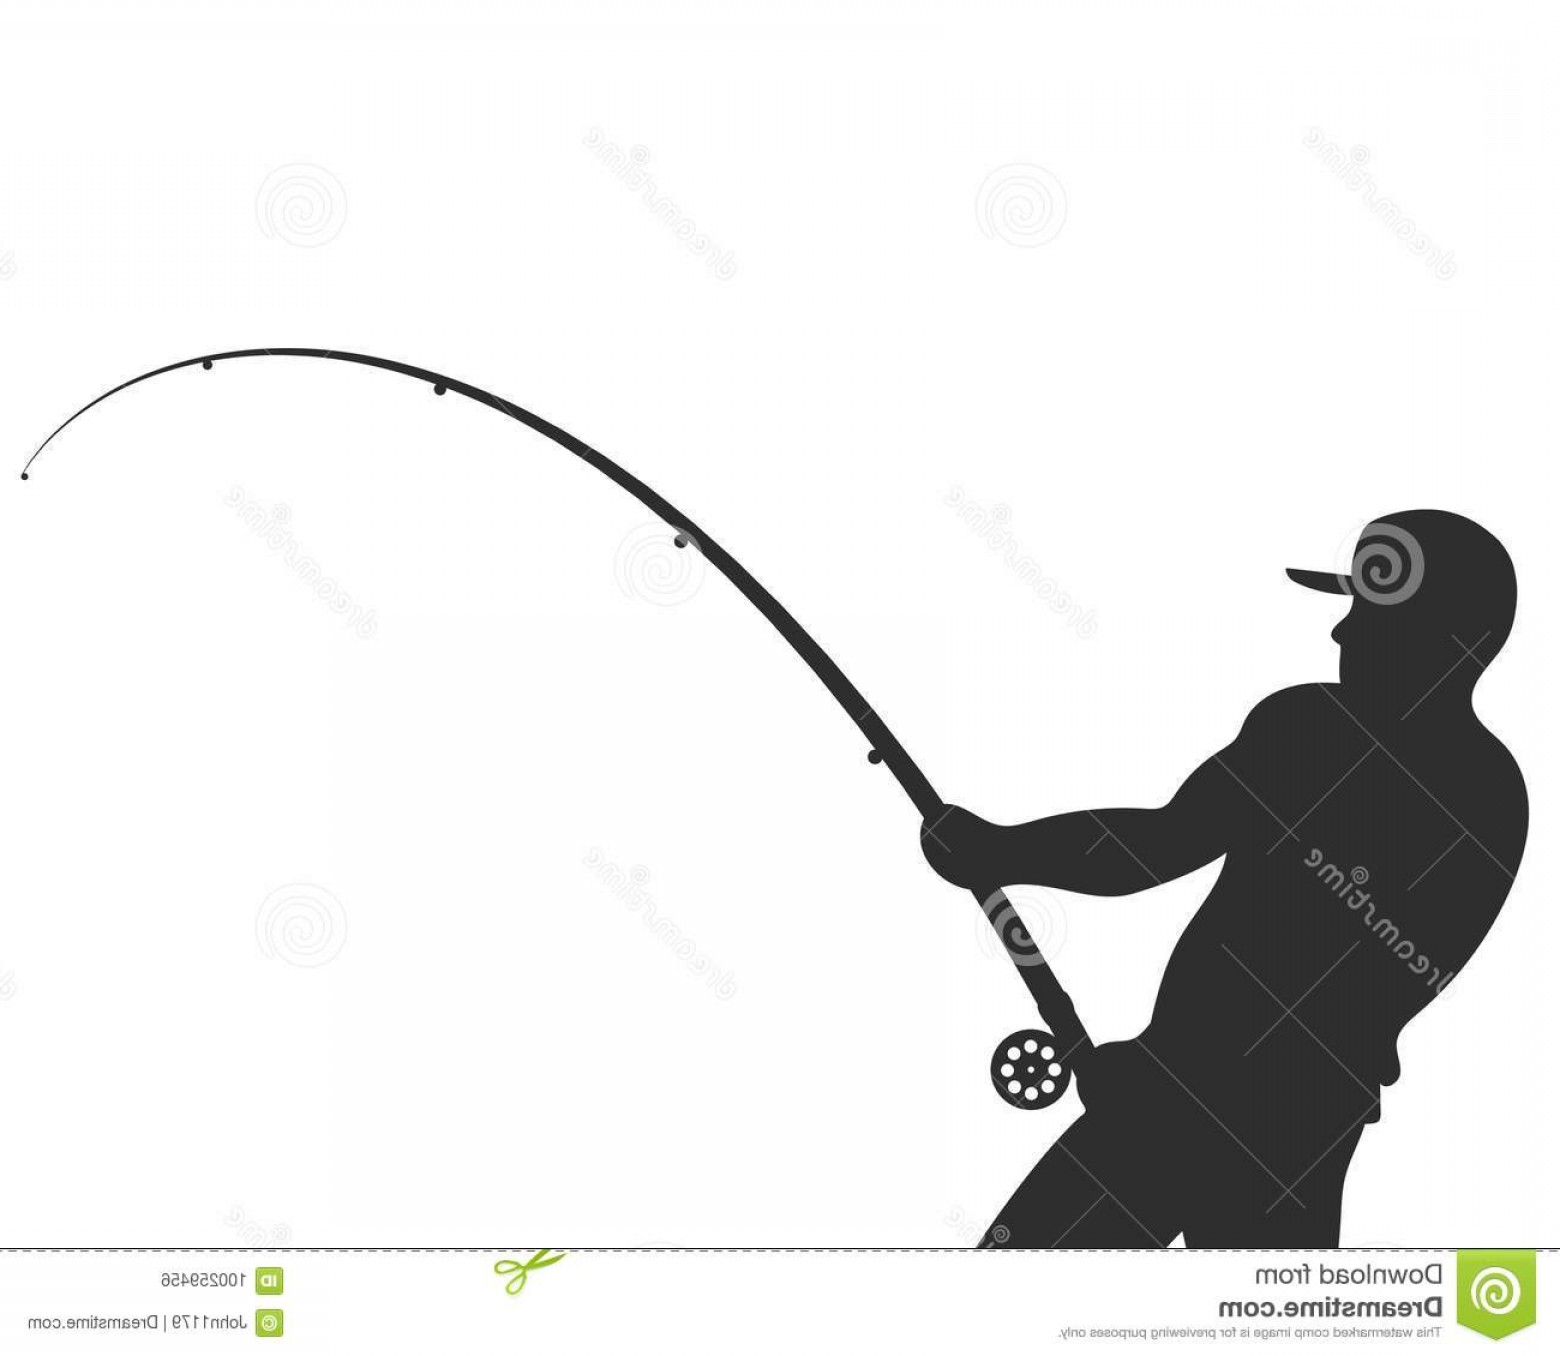 Fishing Pole Silhouette Vector: Silhouette Fisherman Fishing Rod Vector Silhouetted Fisherman Fishing Rod Vector Illustration Image